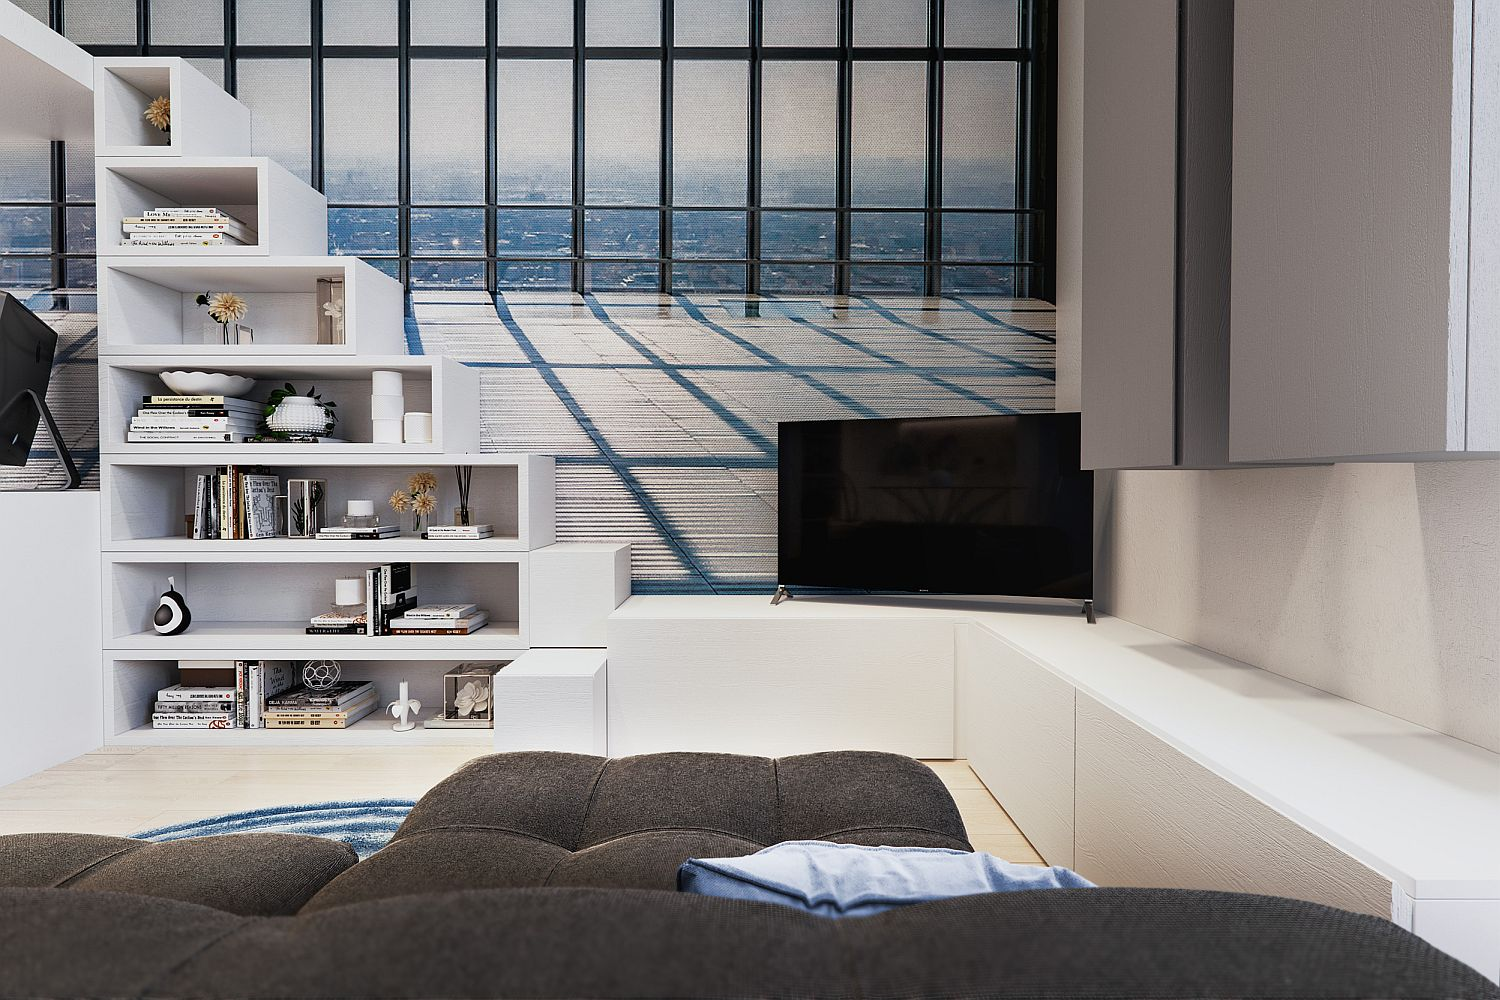 TV in the corner, loft bed steps turned into an open shelf and custom cabinets with ample storage in the living area